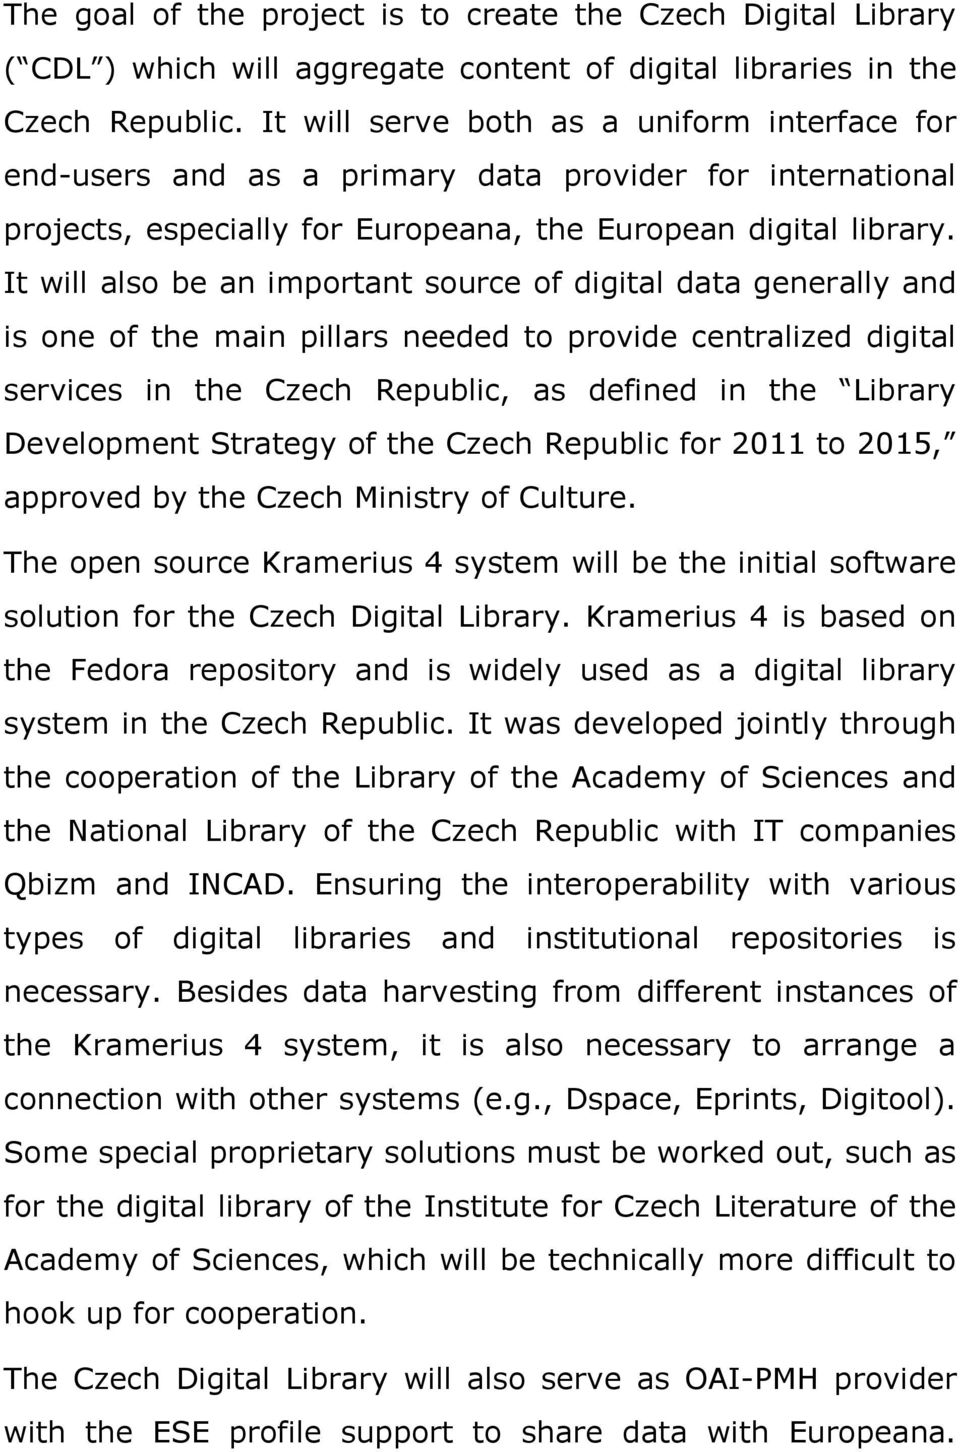 It will also be an important source of digital data generally and is one of the main pillars needed to provide centralized digital services in the Czech Republic, as defined in the Library